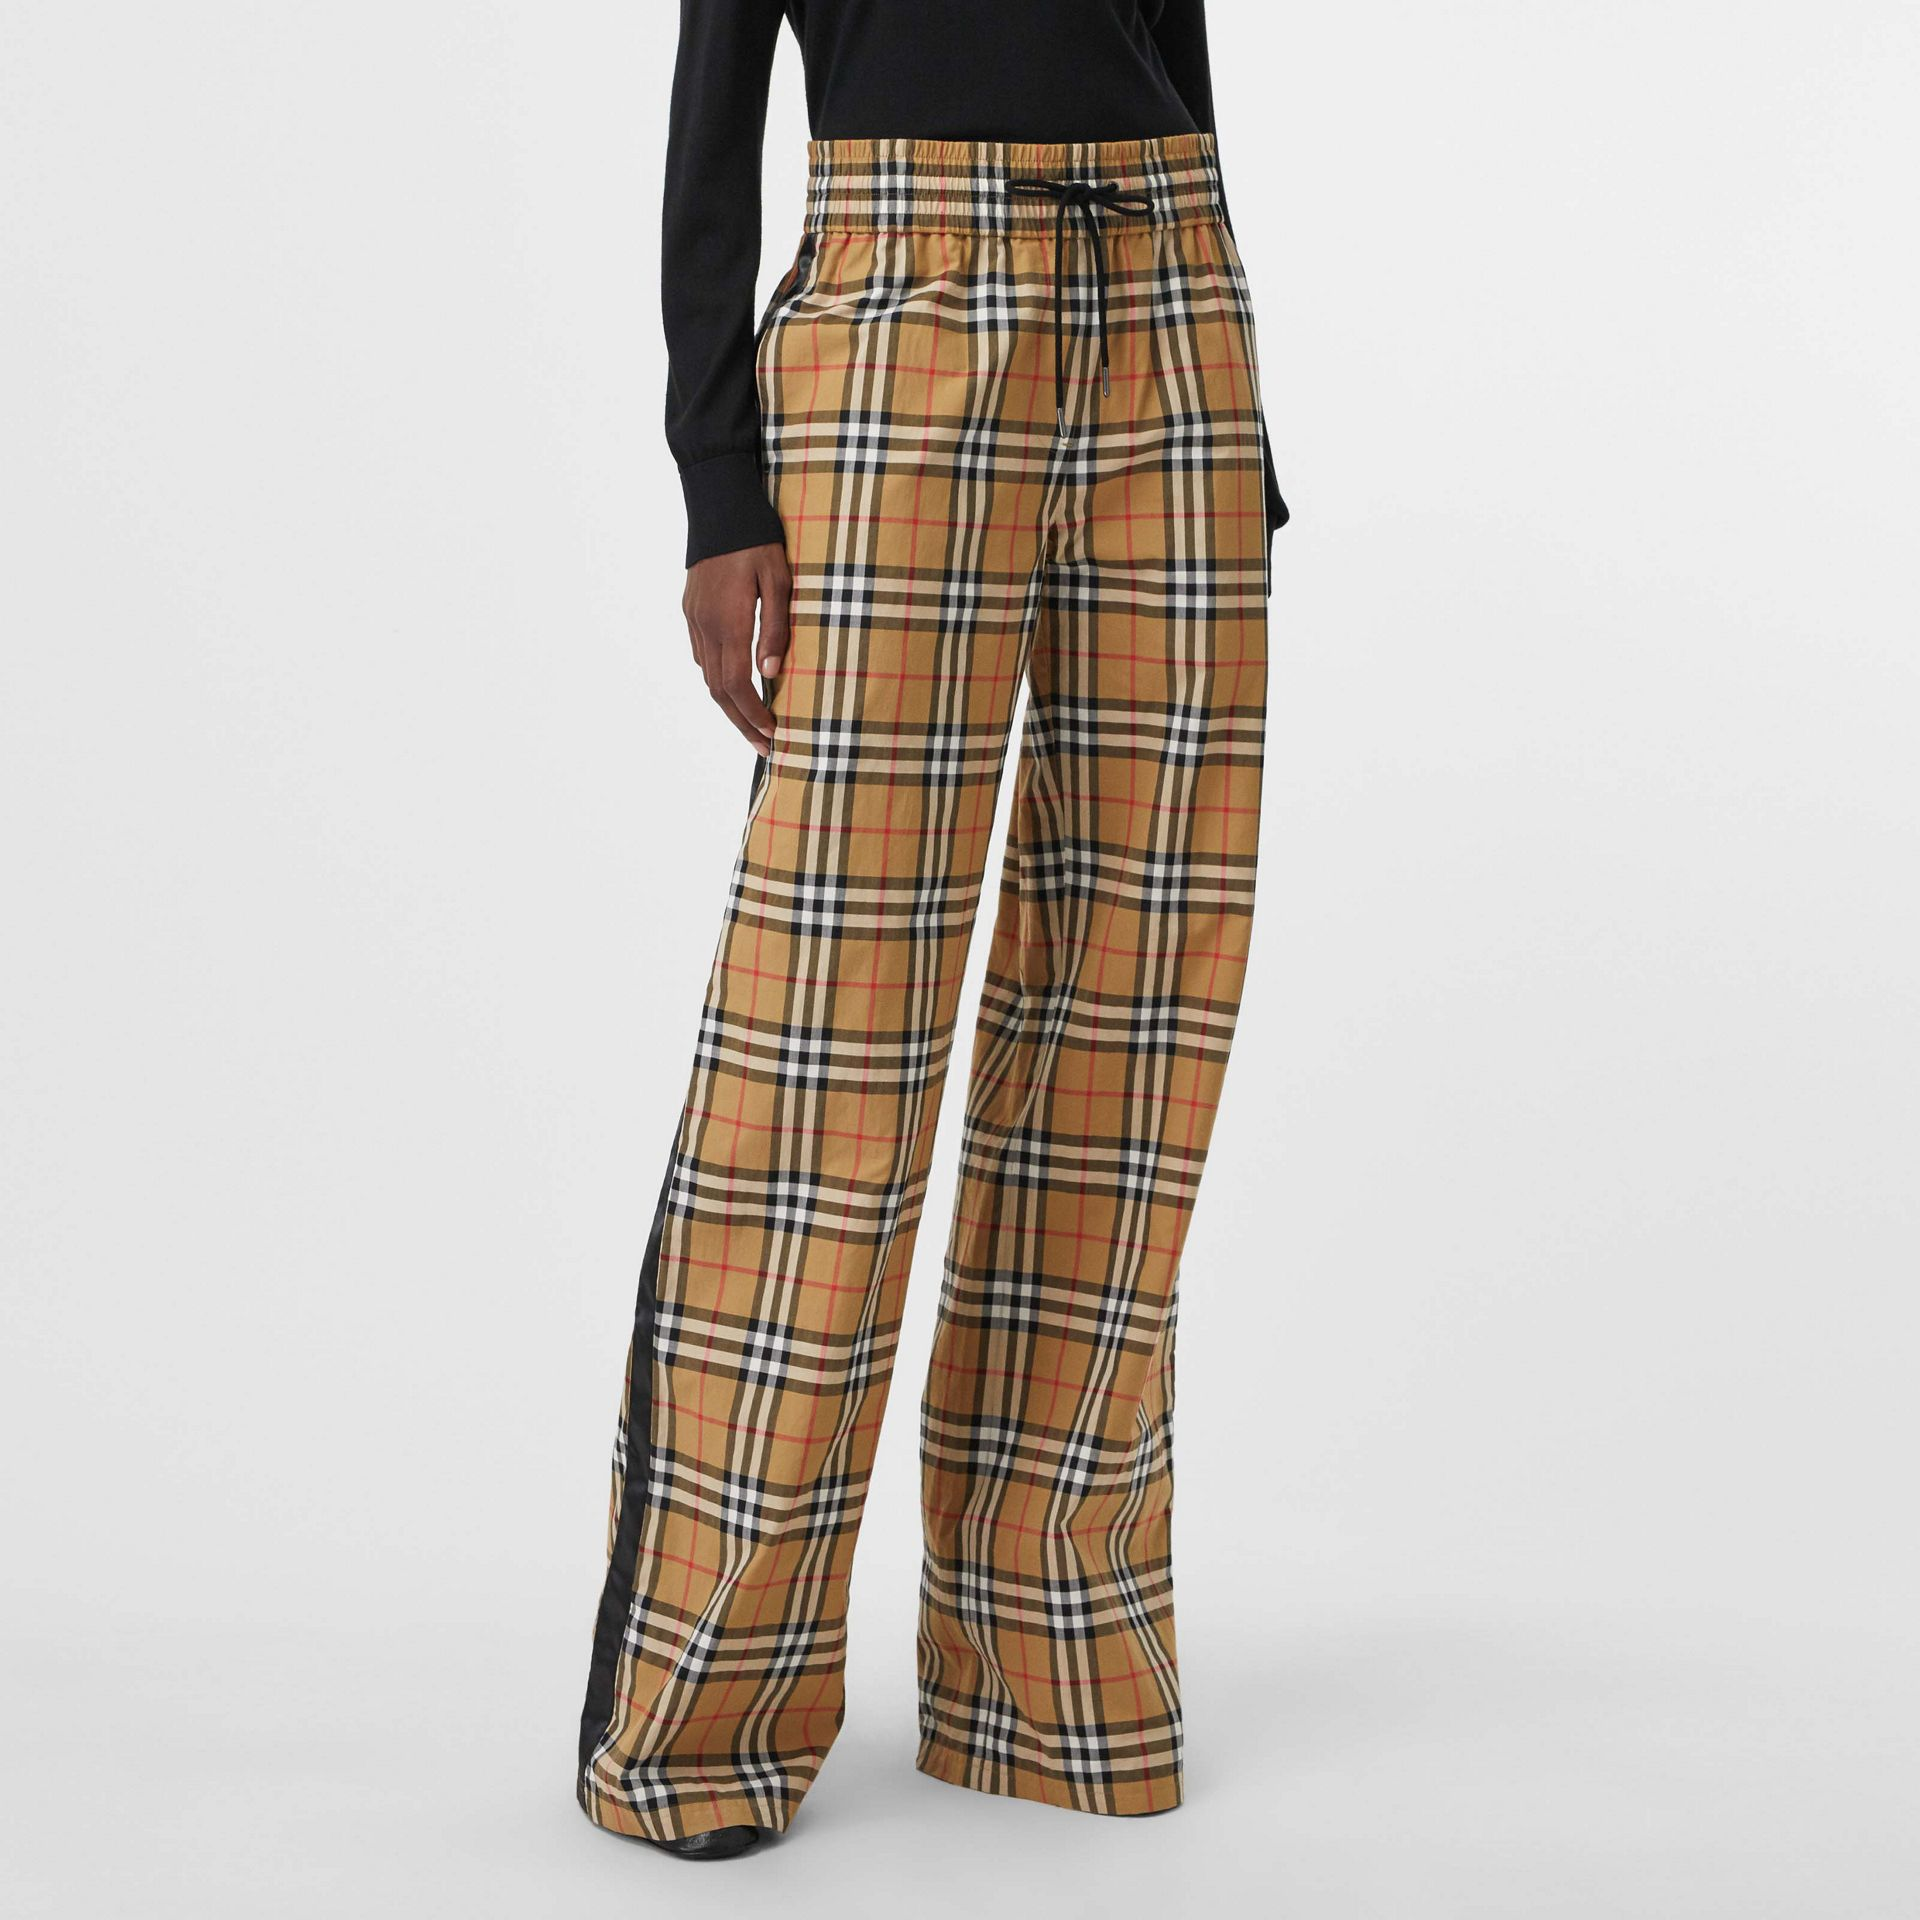 Satin Trim Vintage Check Cotton Trousers in Antique Yellow - Women | Burberry - gallery image 4